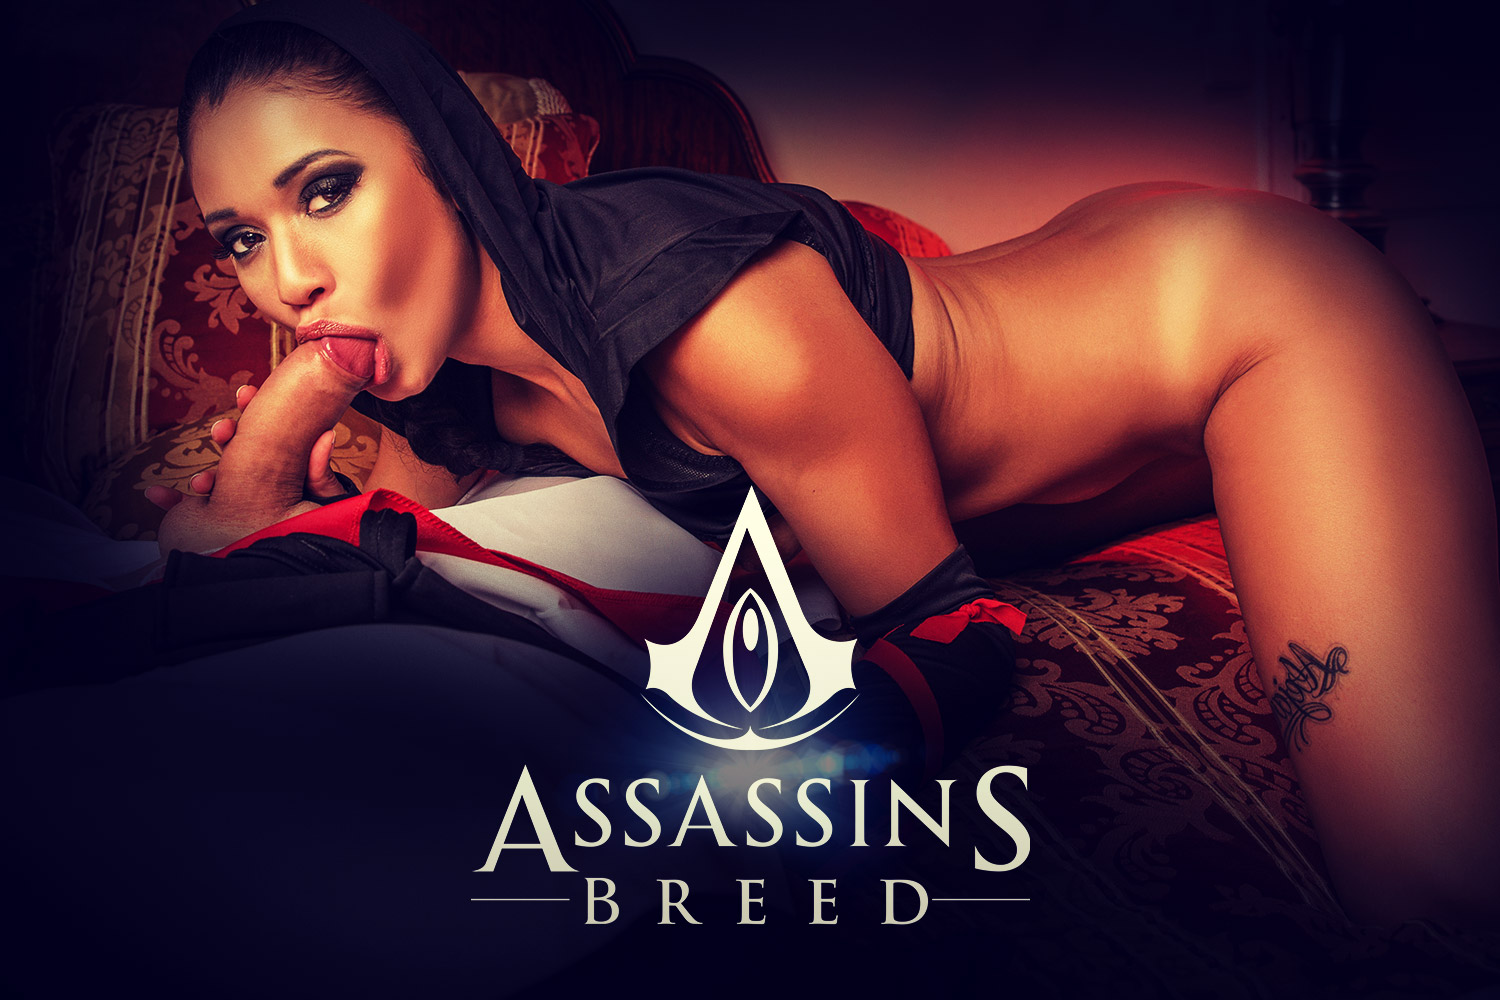 Assassin's Creed VR Porn Cosplay starring Jade Presley | MobileVRXXX